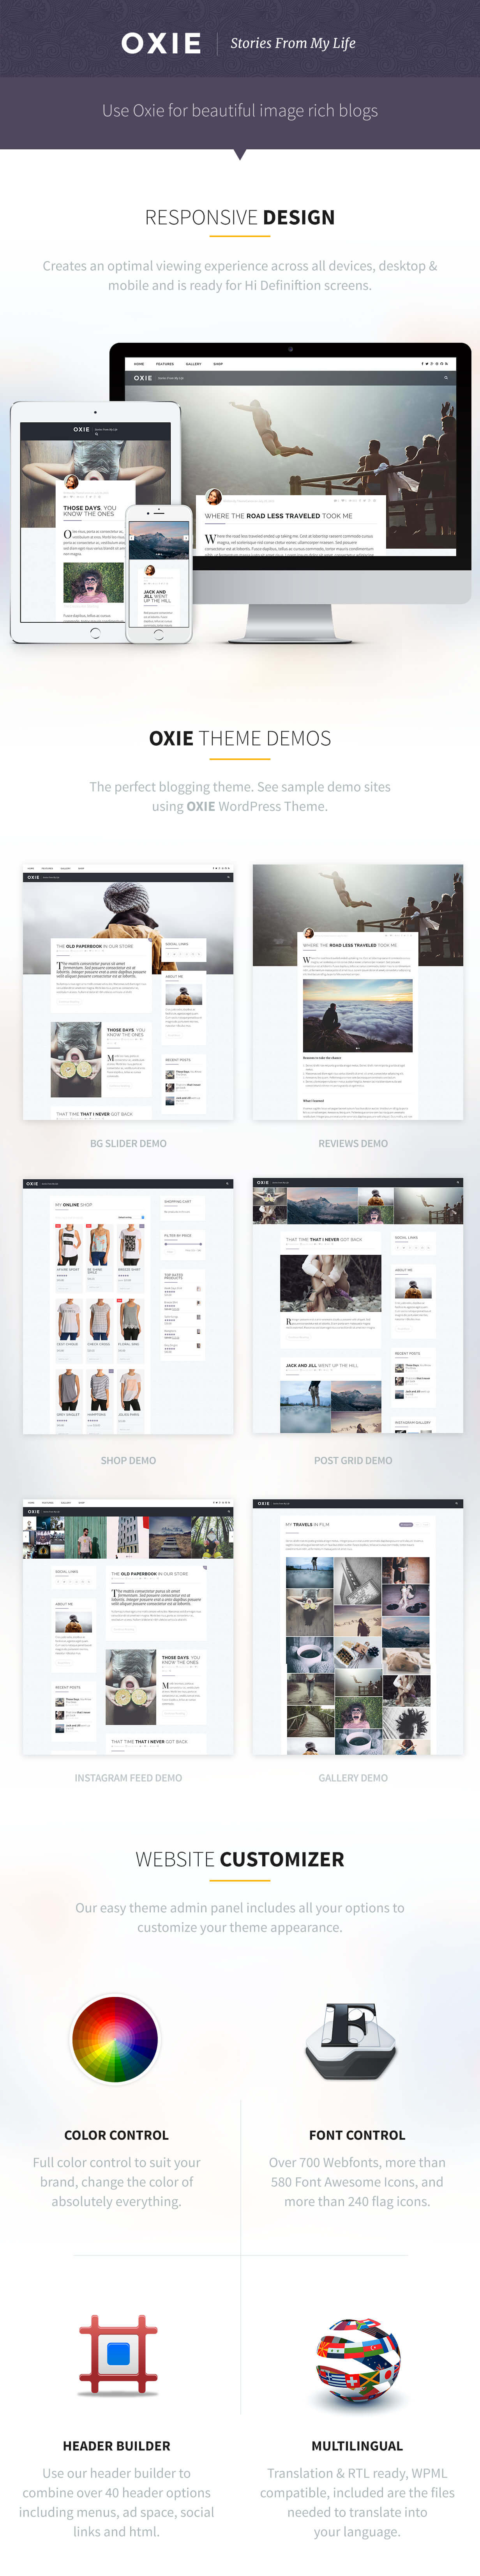 OXIE WordPress Theme